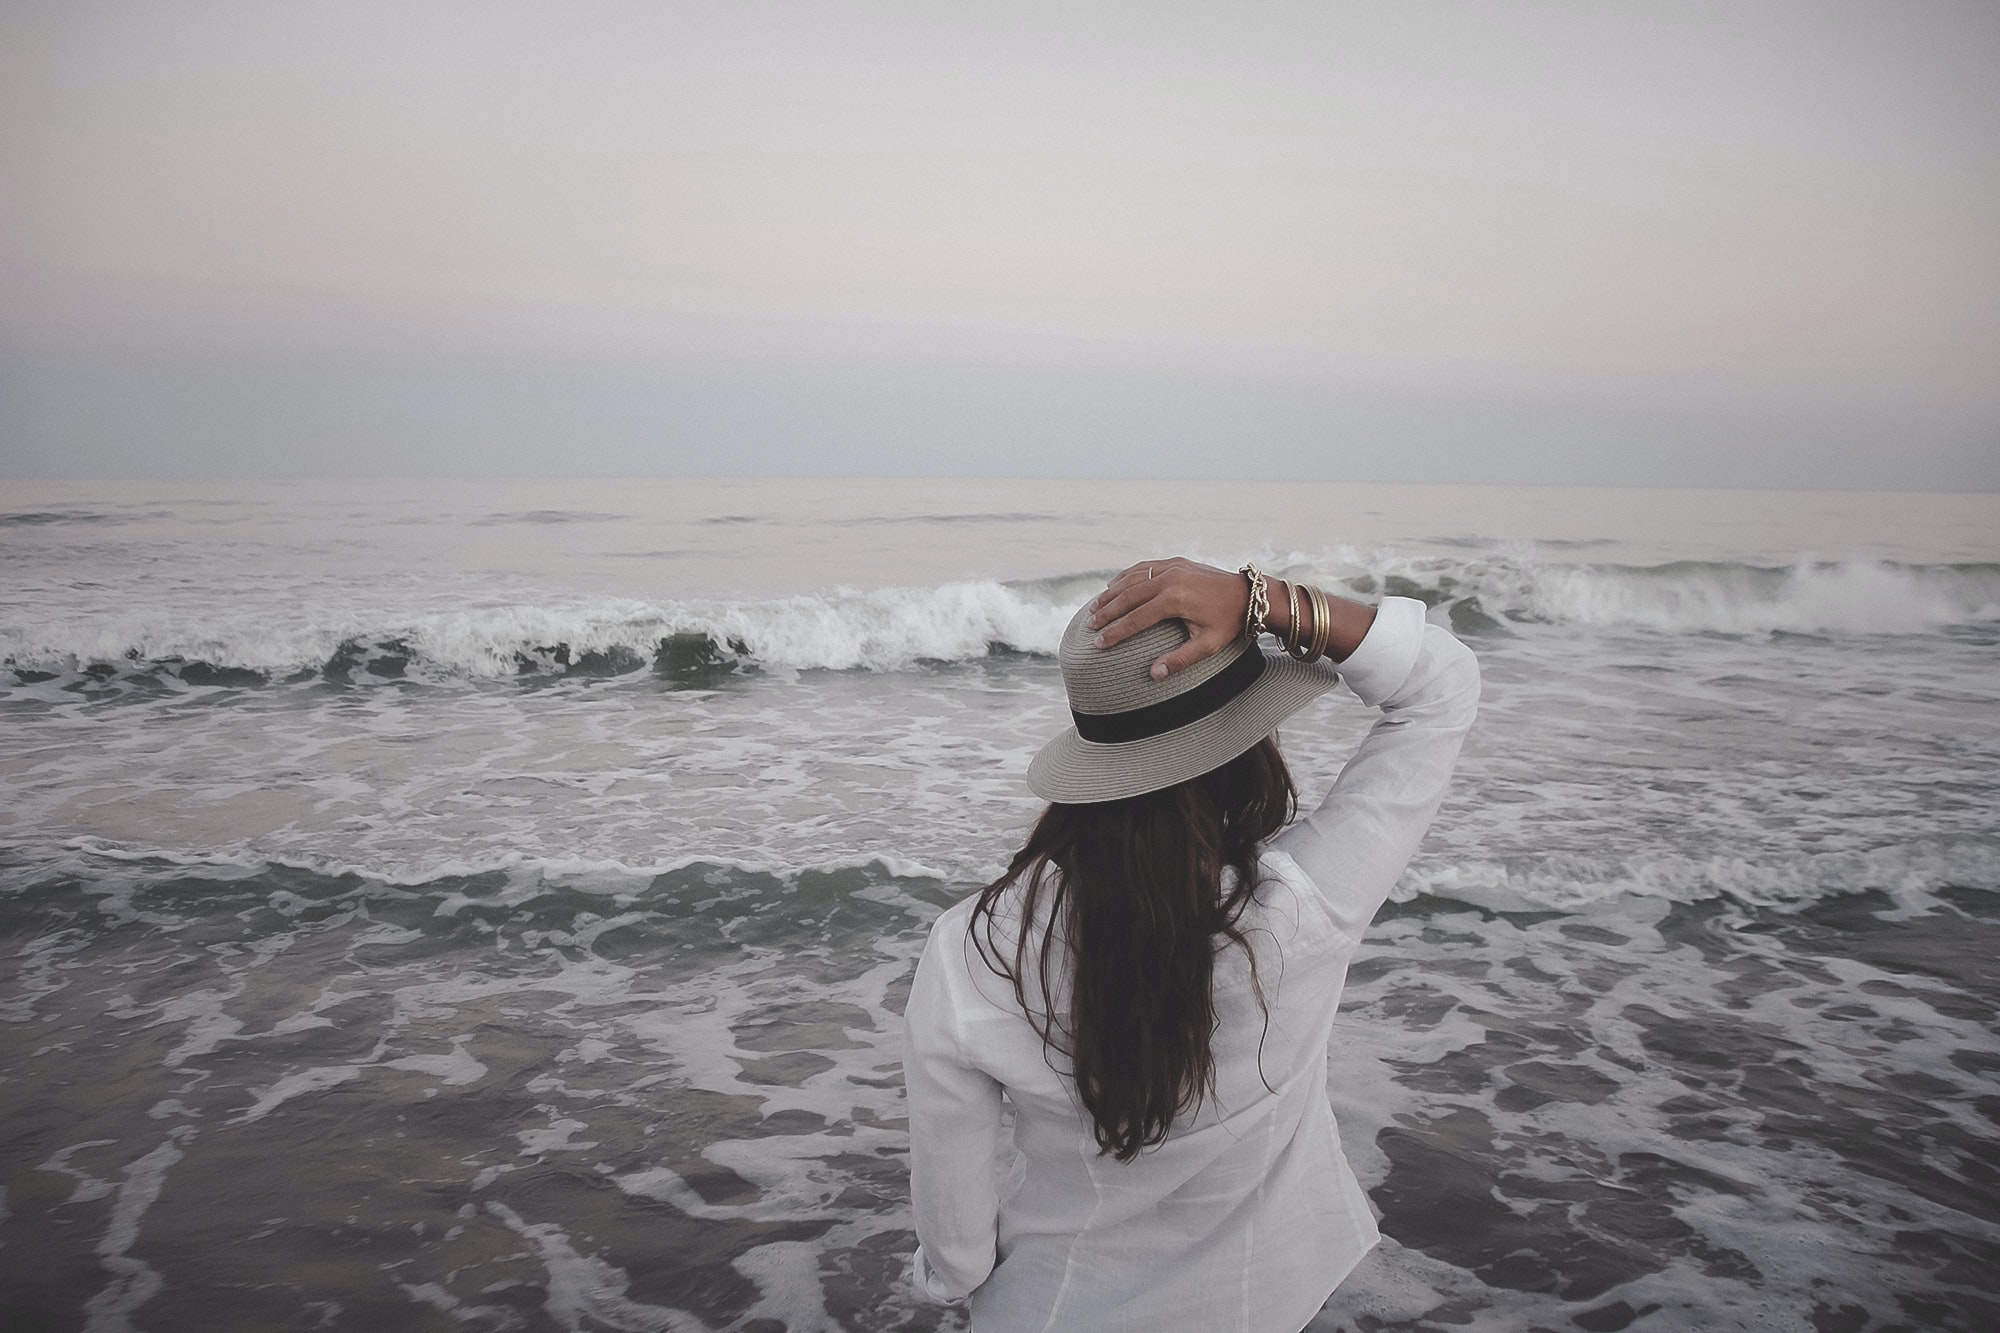 Woman in white shirt holding hand on a hat watching the ocean waves on a cloudy day